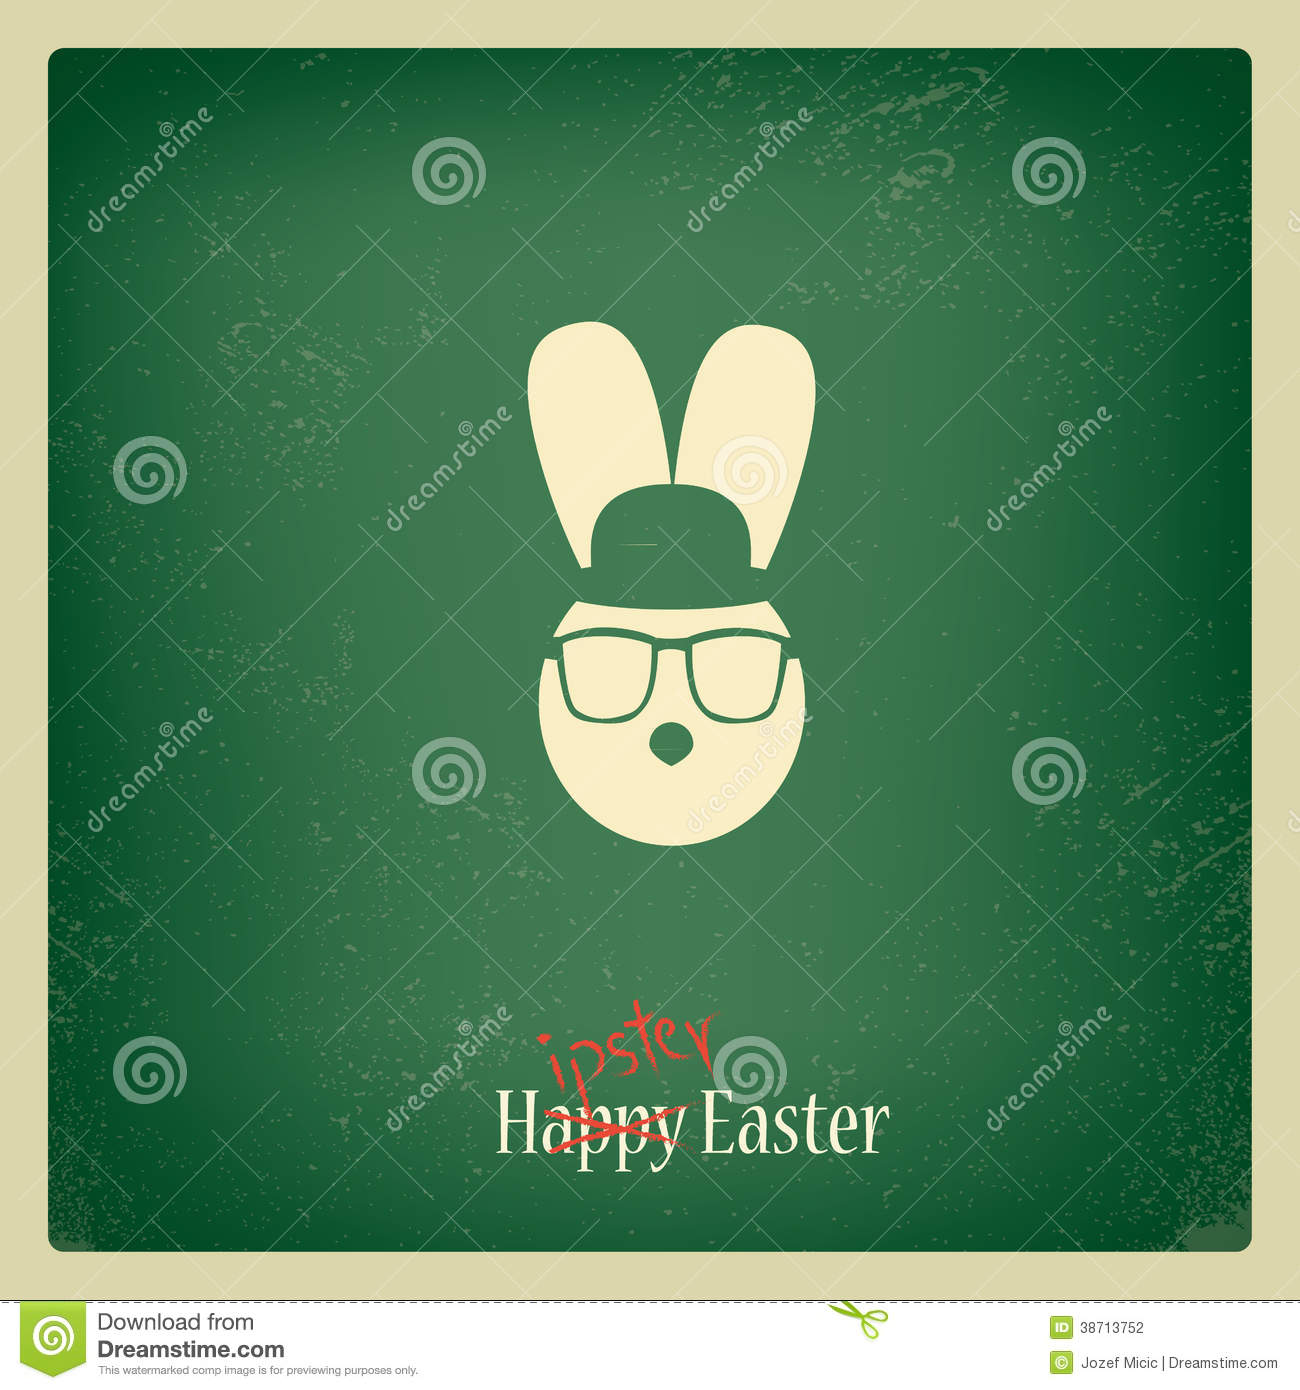 Funny easter greetings christmas imagess club funny easter greetings kristyandbryce Gallery